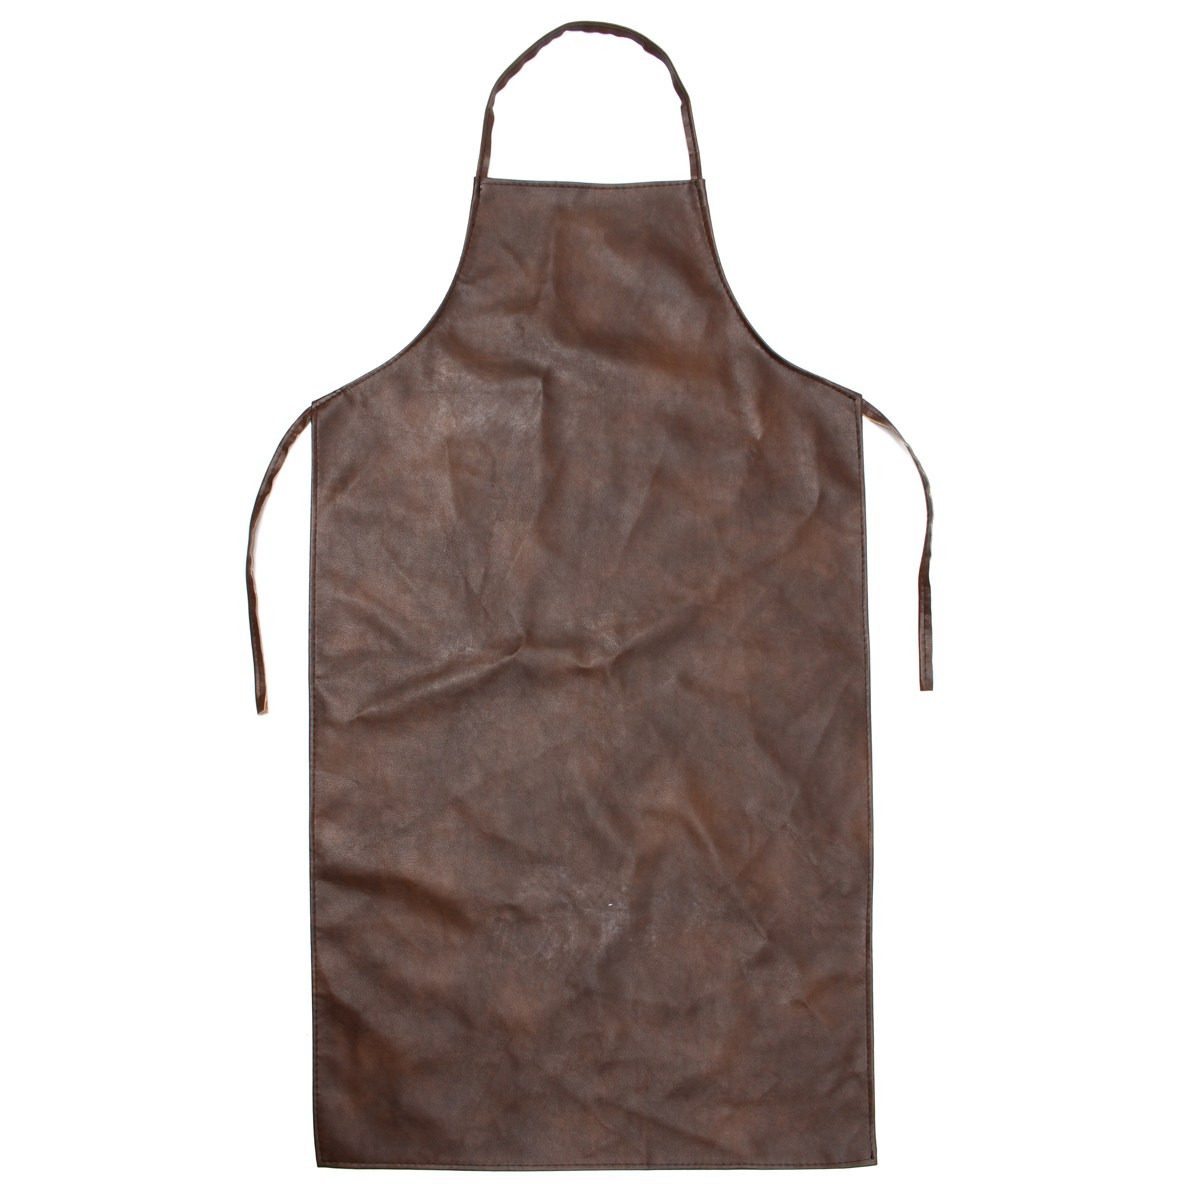 NEW Leather Equipment Apron Waterproof Washable Heat Insulation Kitchen Workplace Safety Clothing new safurance leather equipment apron